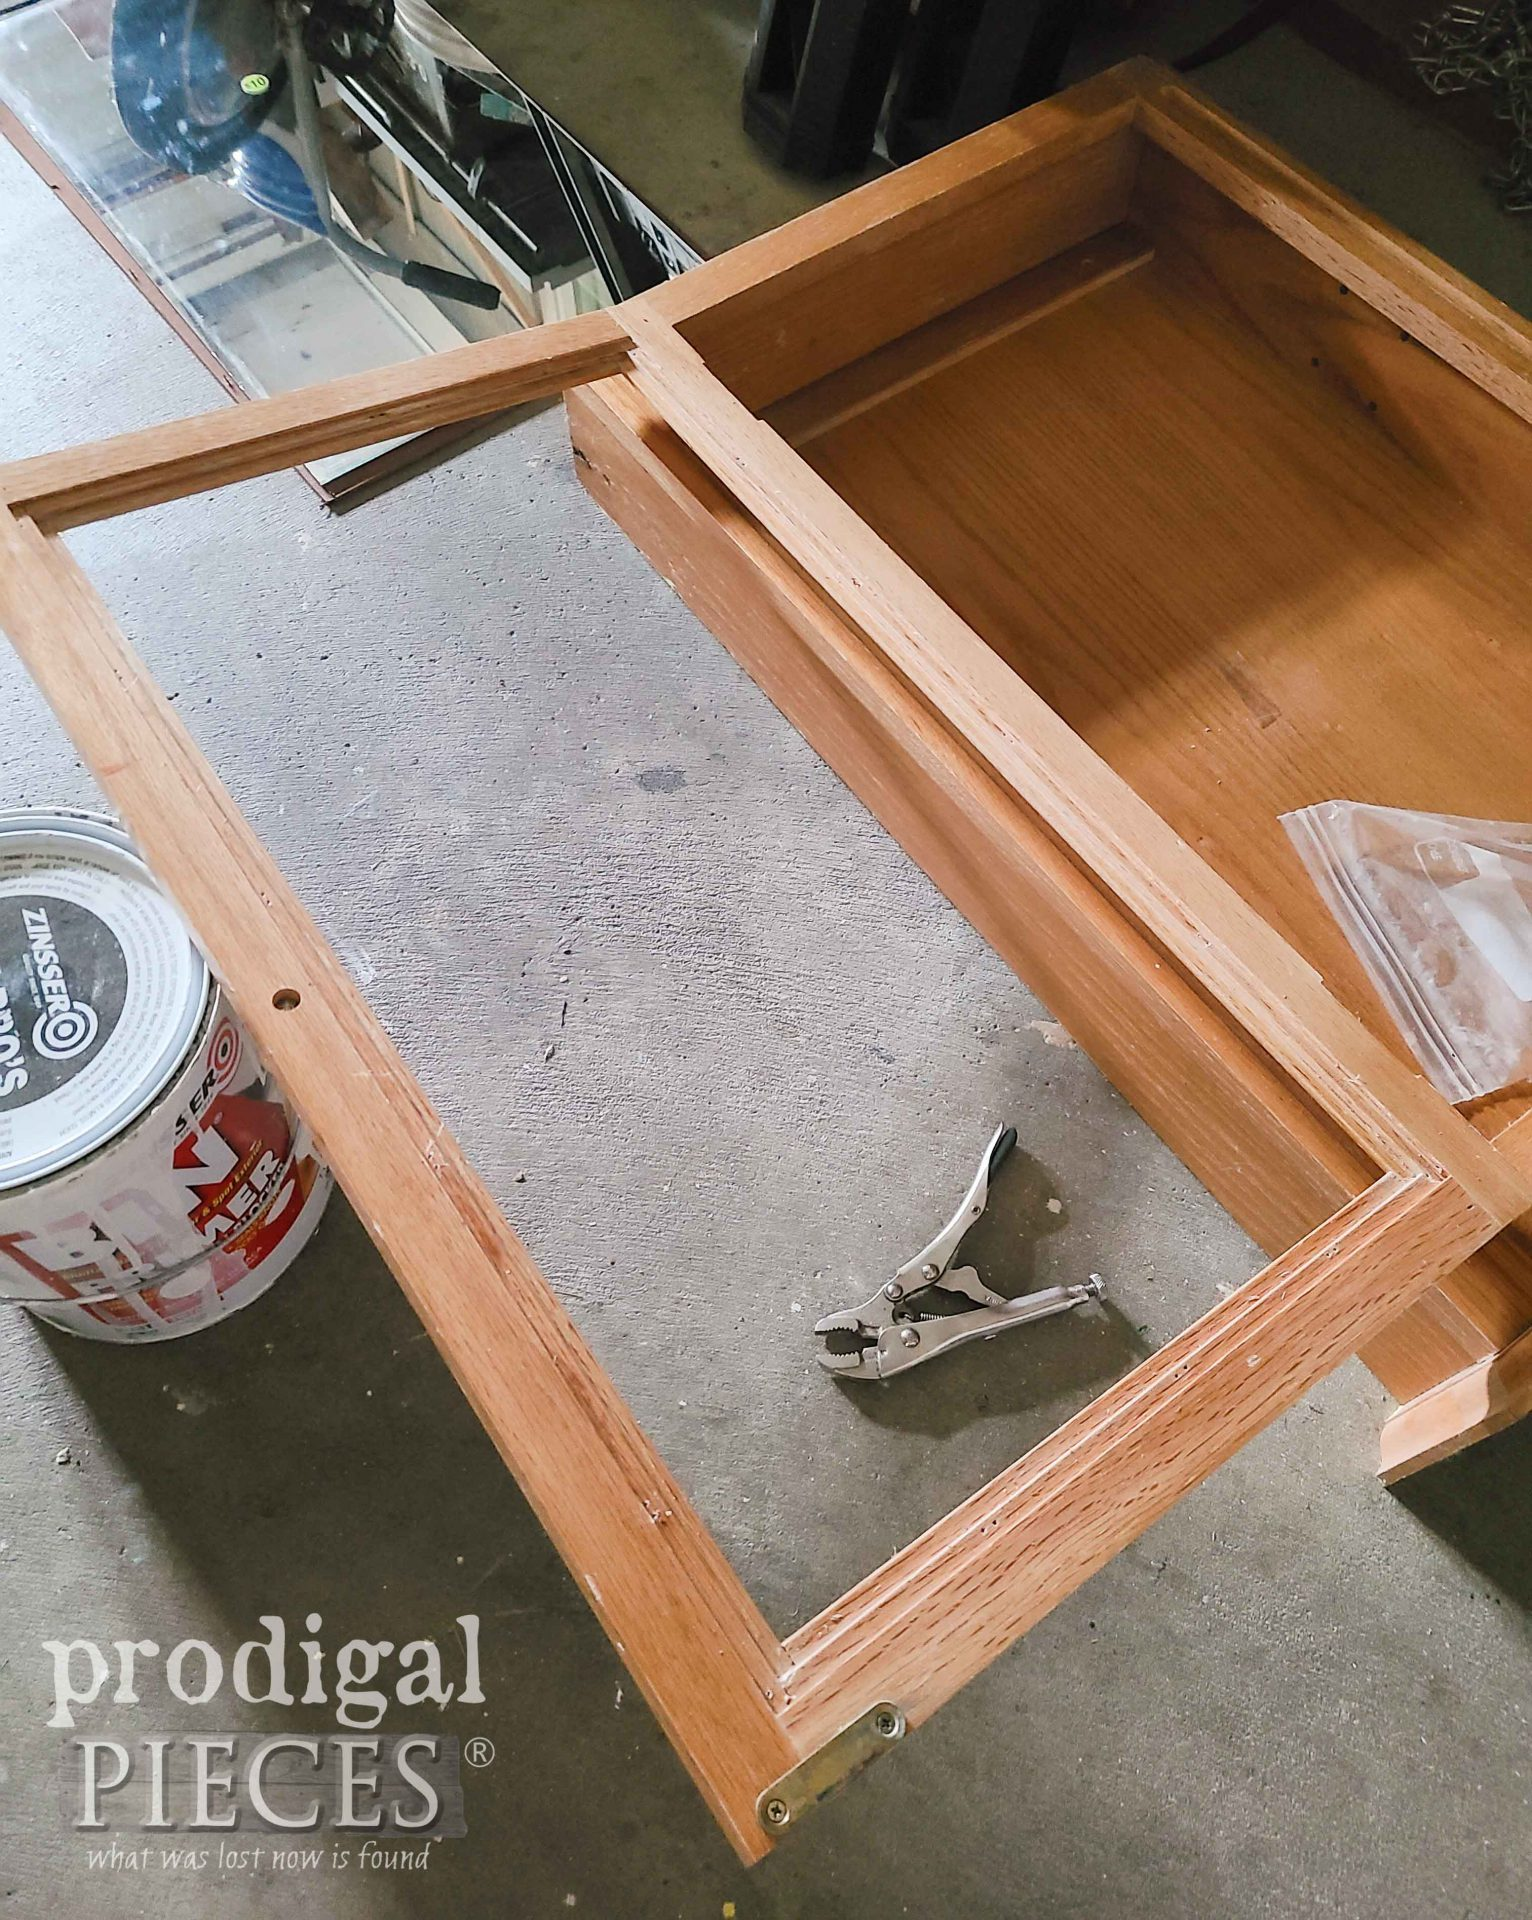 Removed Mirror from Mirrored Medicine Cabinet | prodigalpieces.com